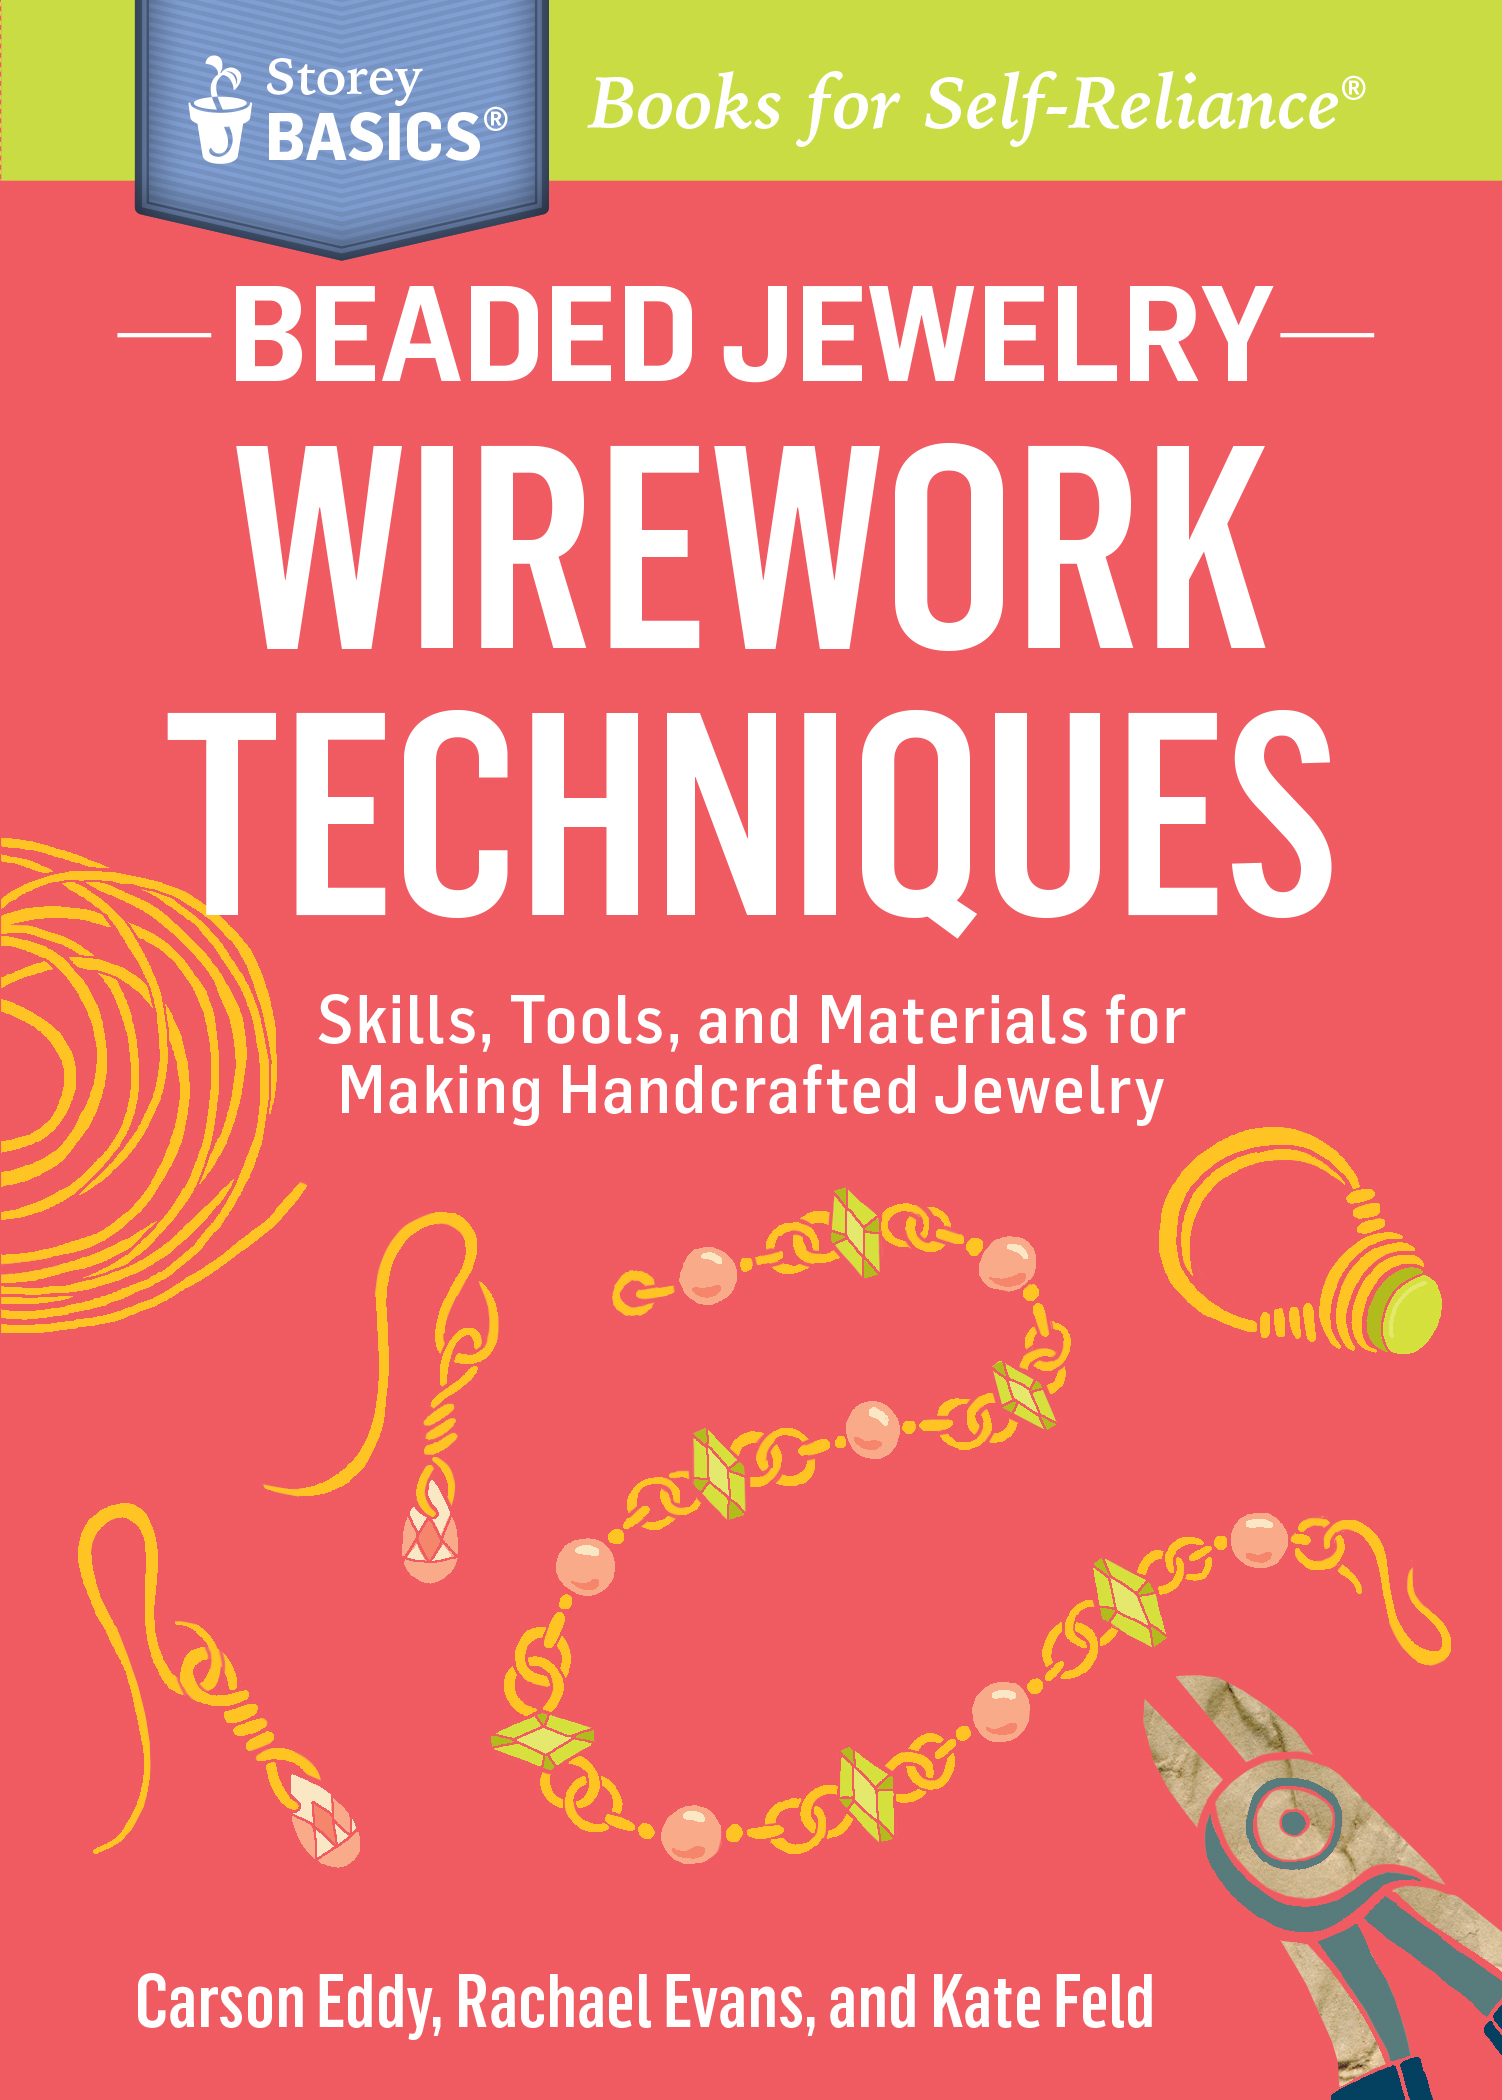 Beaded Jewelry: Wirework Techniques Skills, Tools, and Materials for Making Handcrafted Jewelry. A Storey BASICS® Title - Carson Eddy